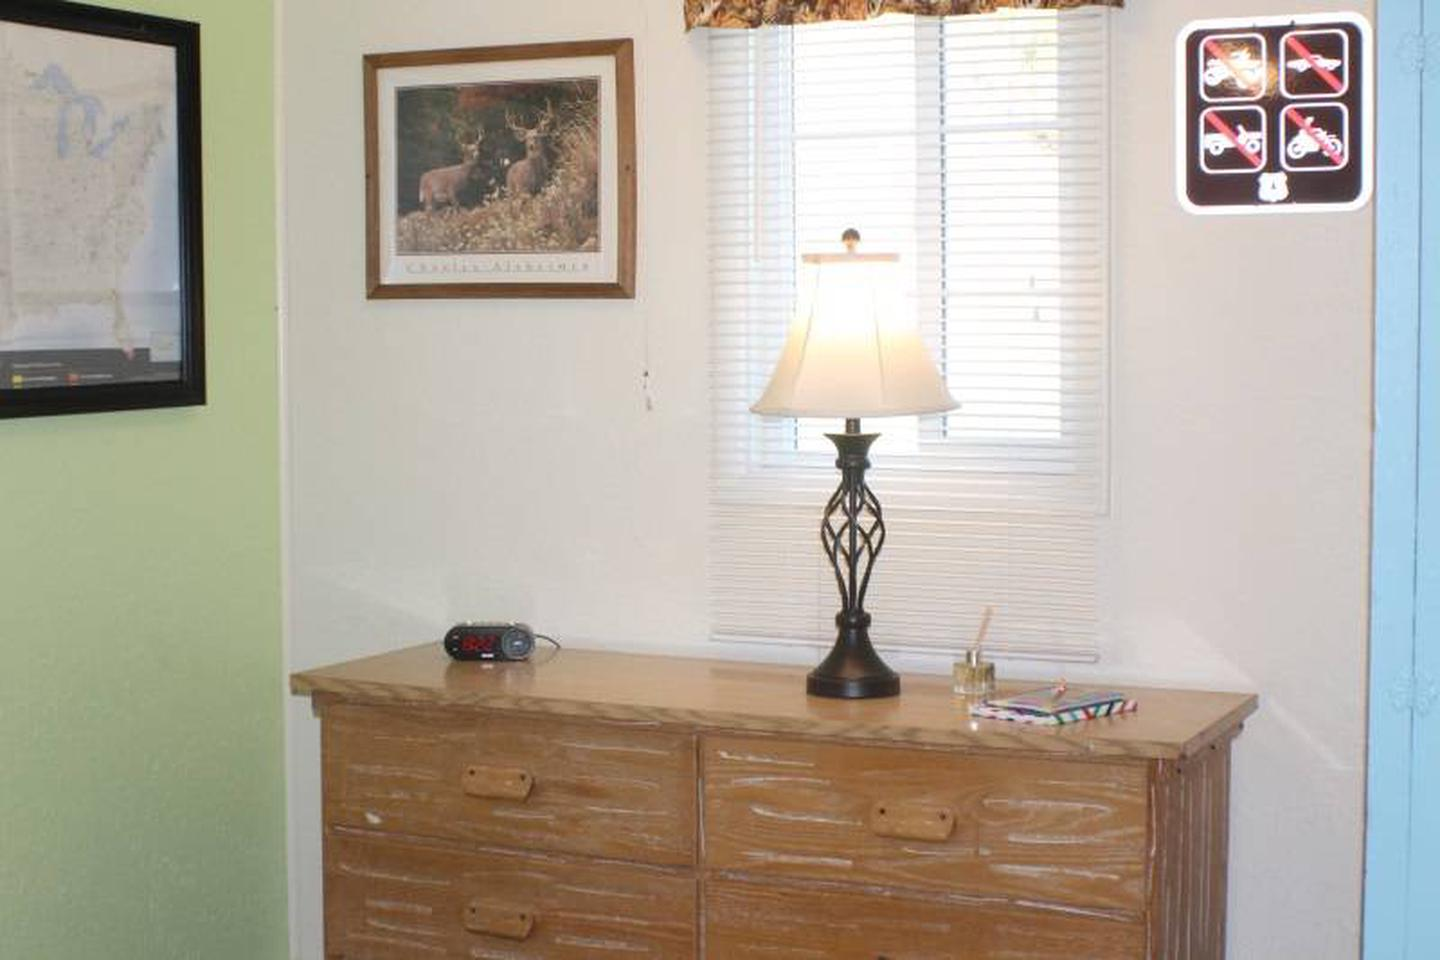 dresser with lampCabin 3: View to right of full bed. Dresser with lamp and alarm clock with USB charging port.